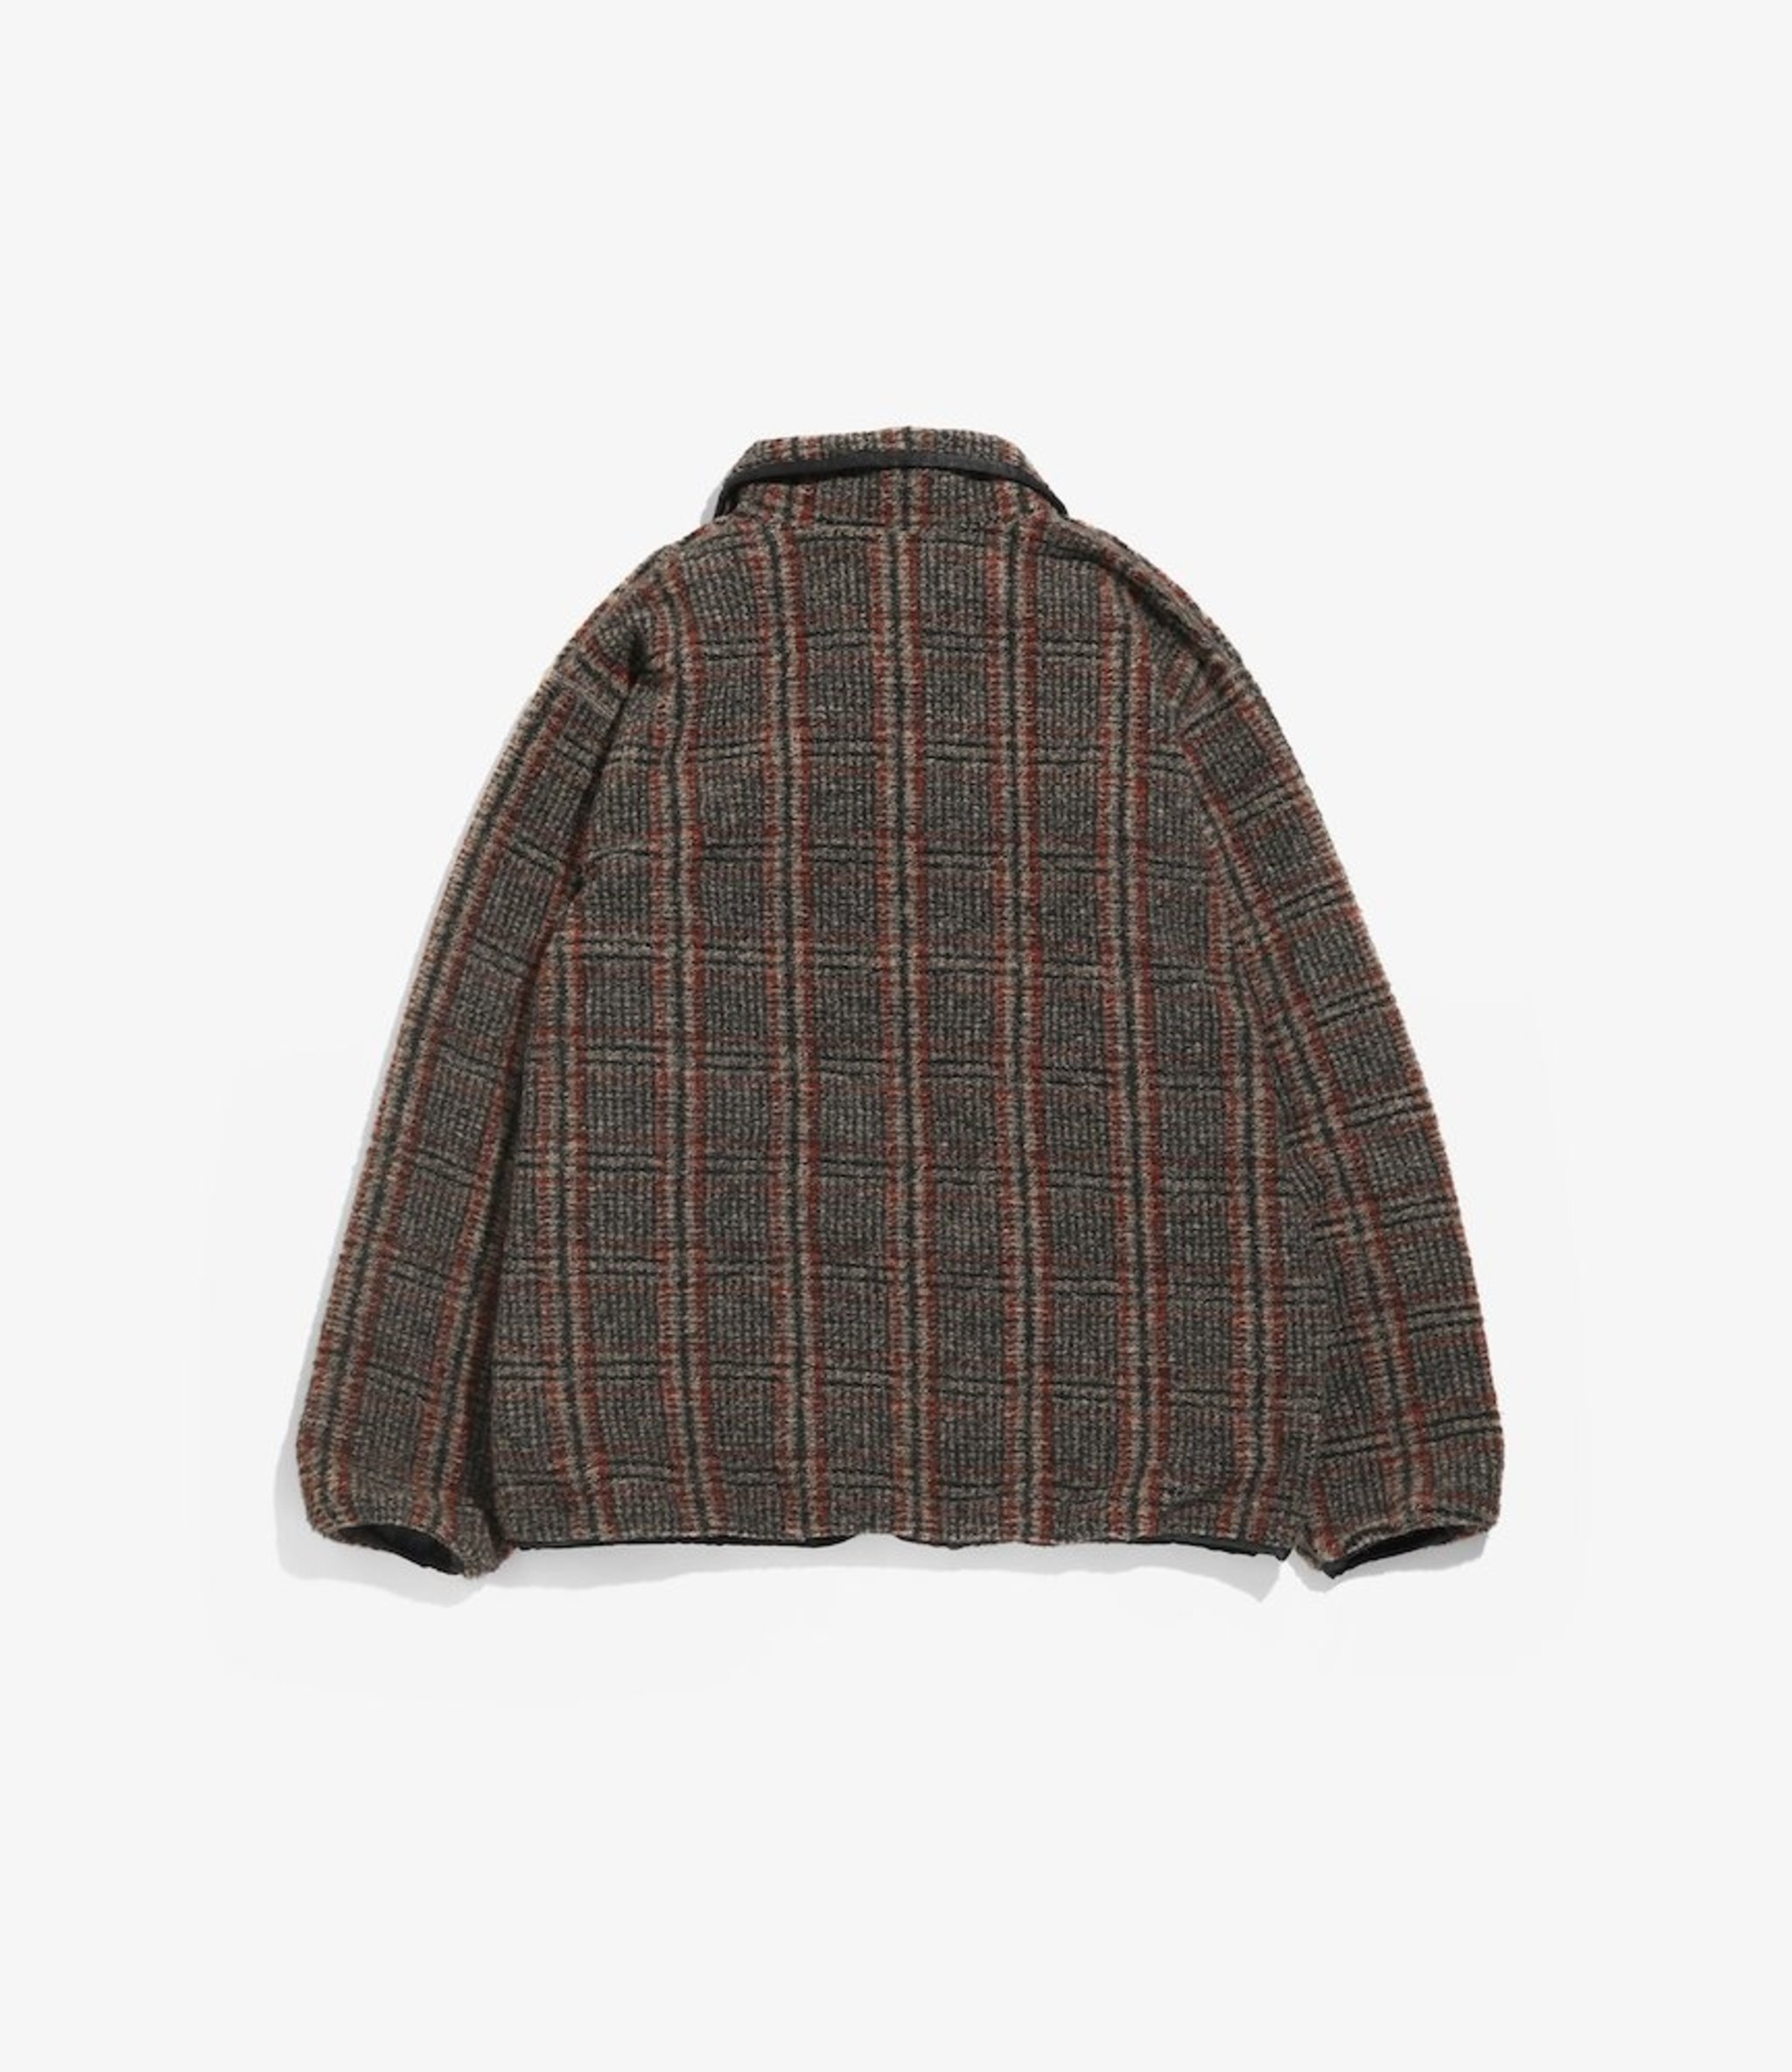 Needles W.U. Piping Jacket - Plaid Knit Jacquard - Beige